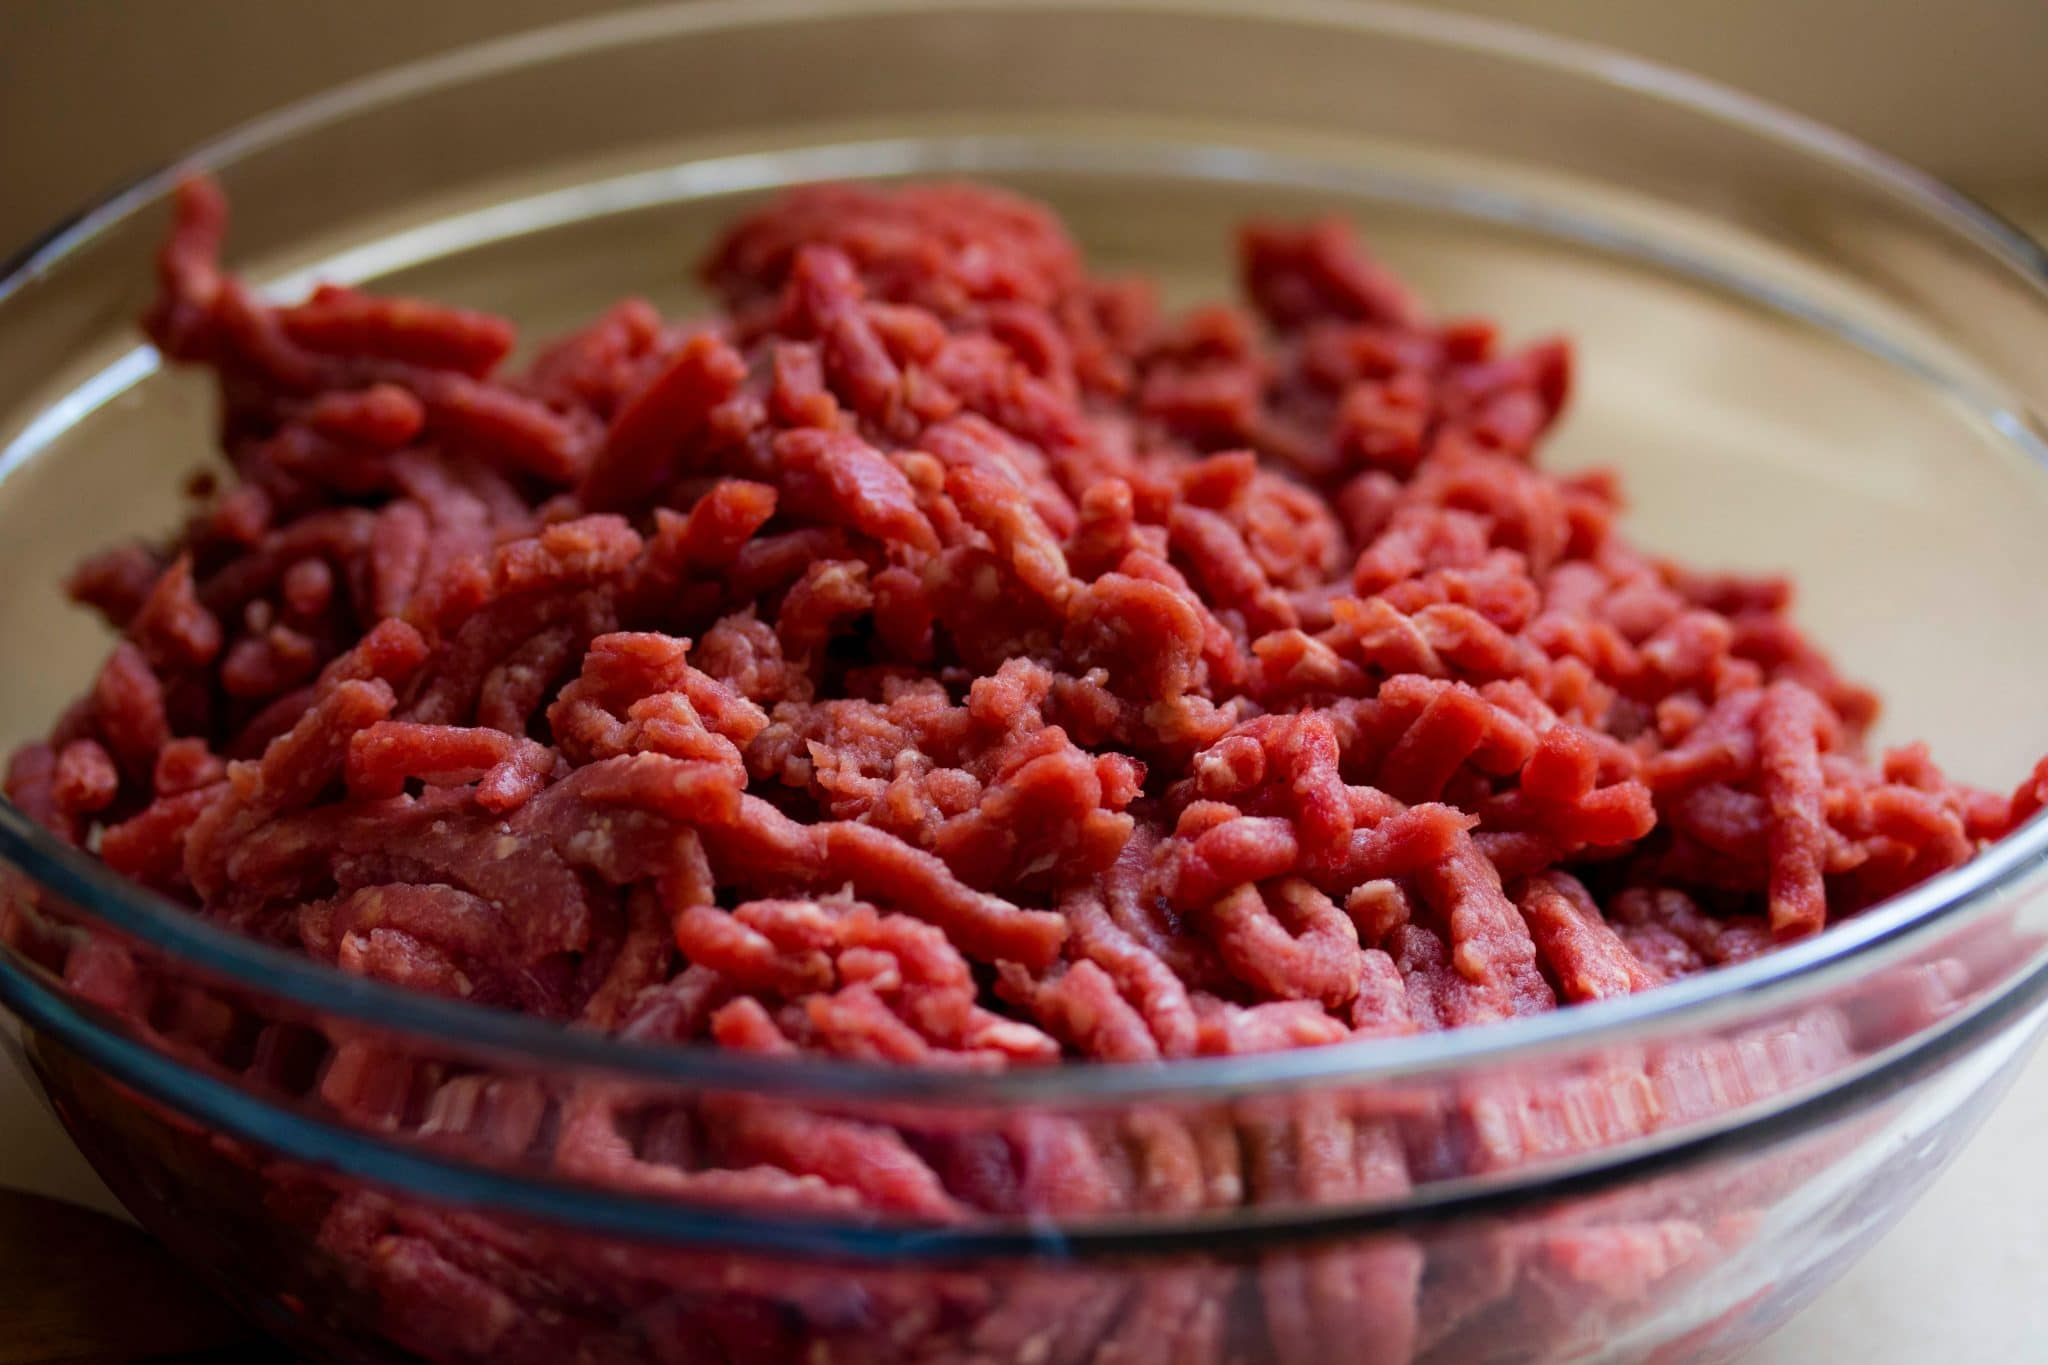 minced meat, minced meat seasoning